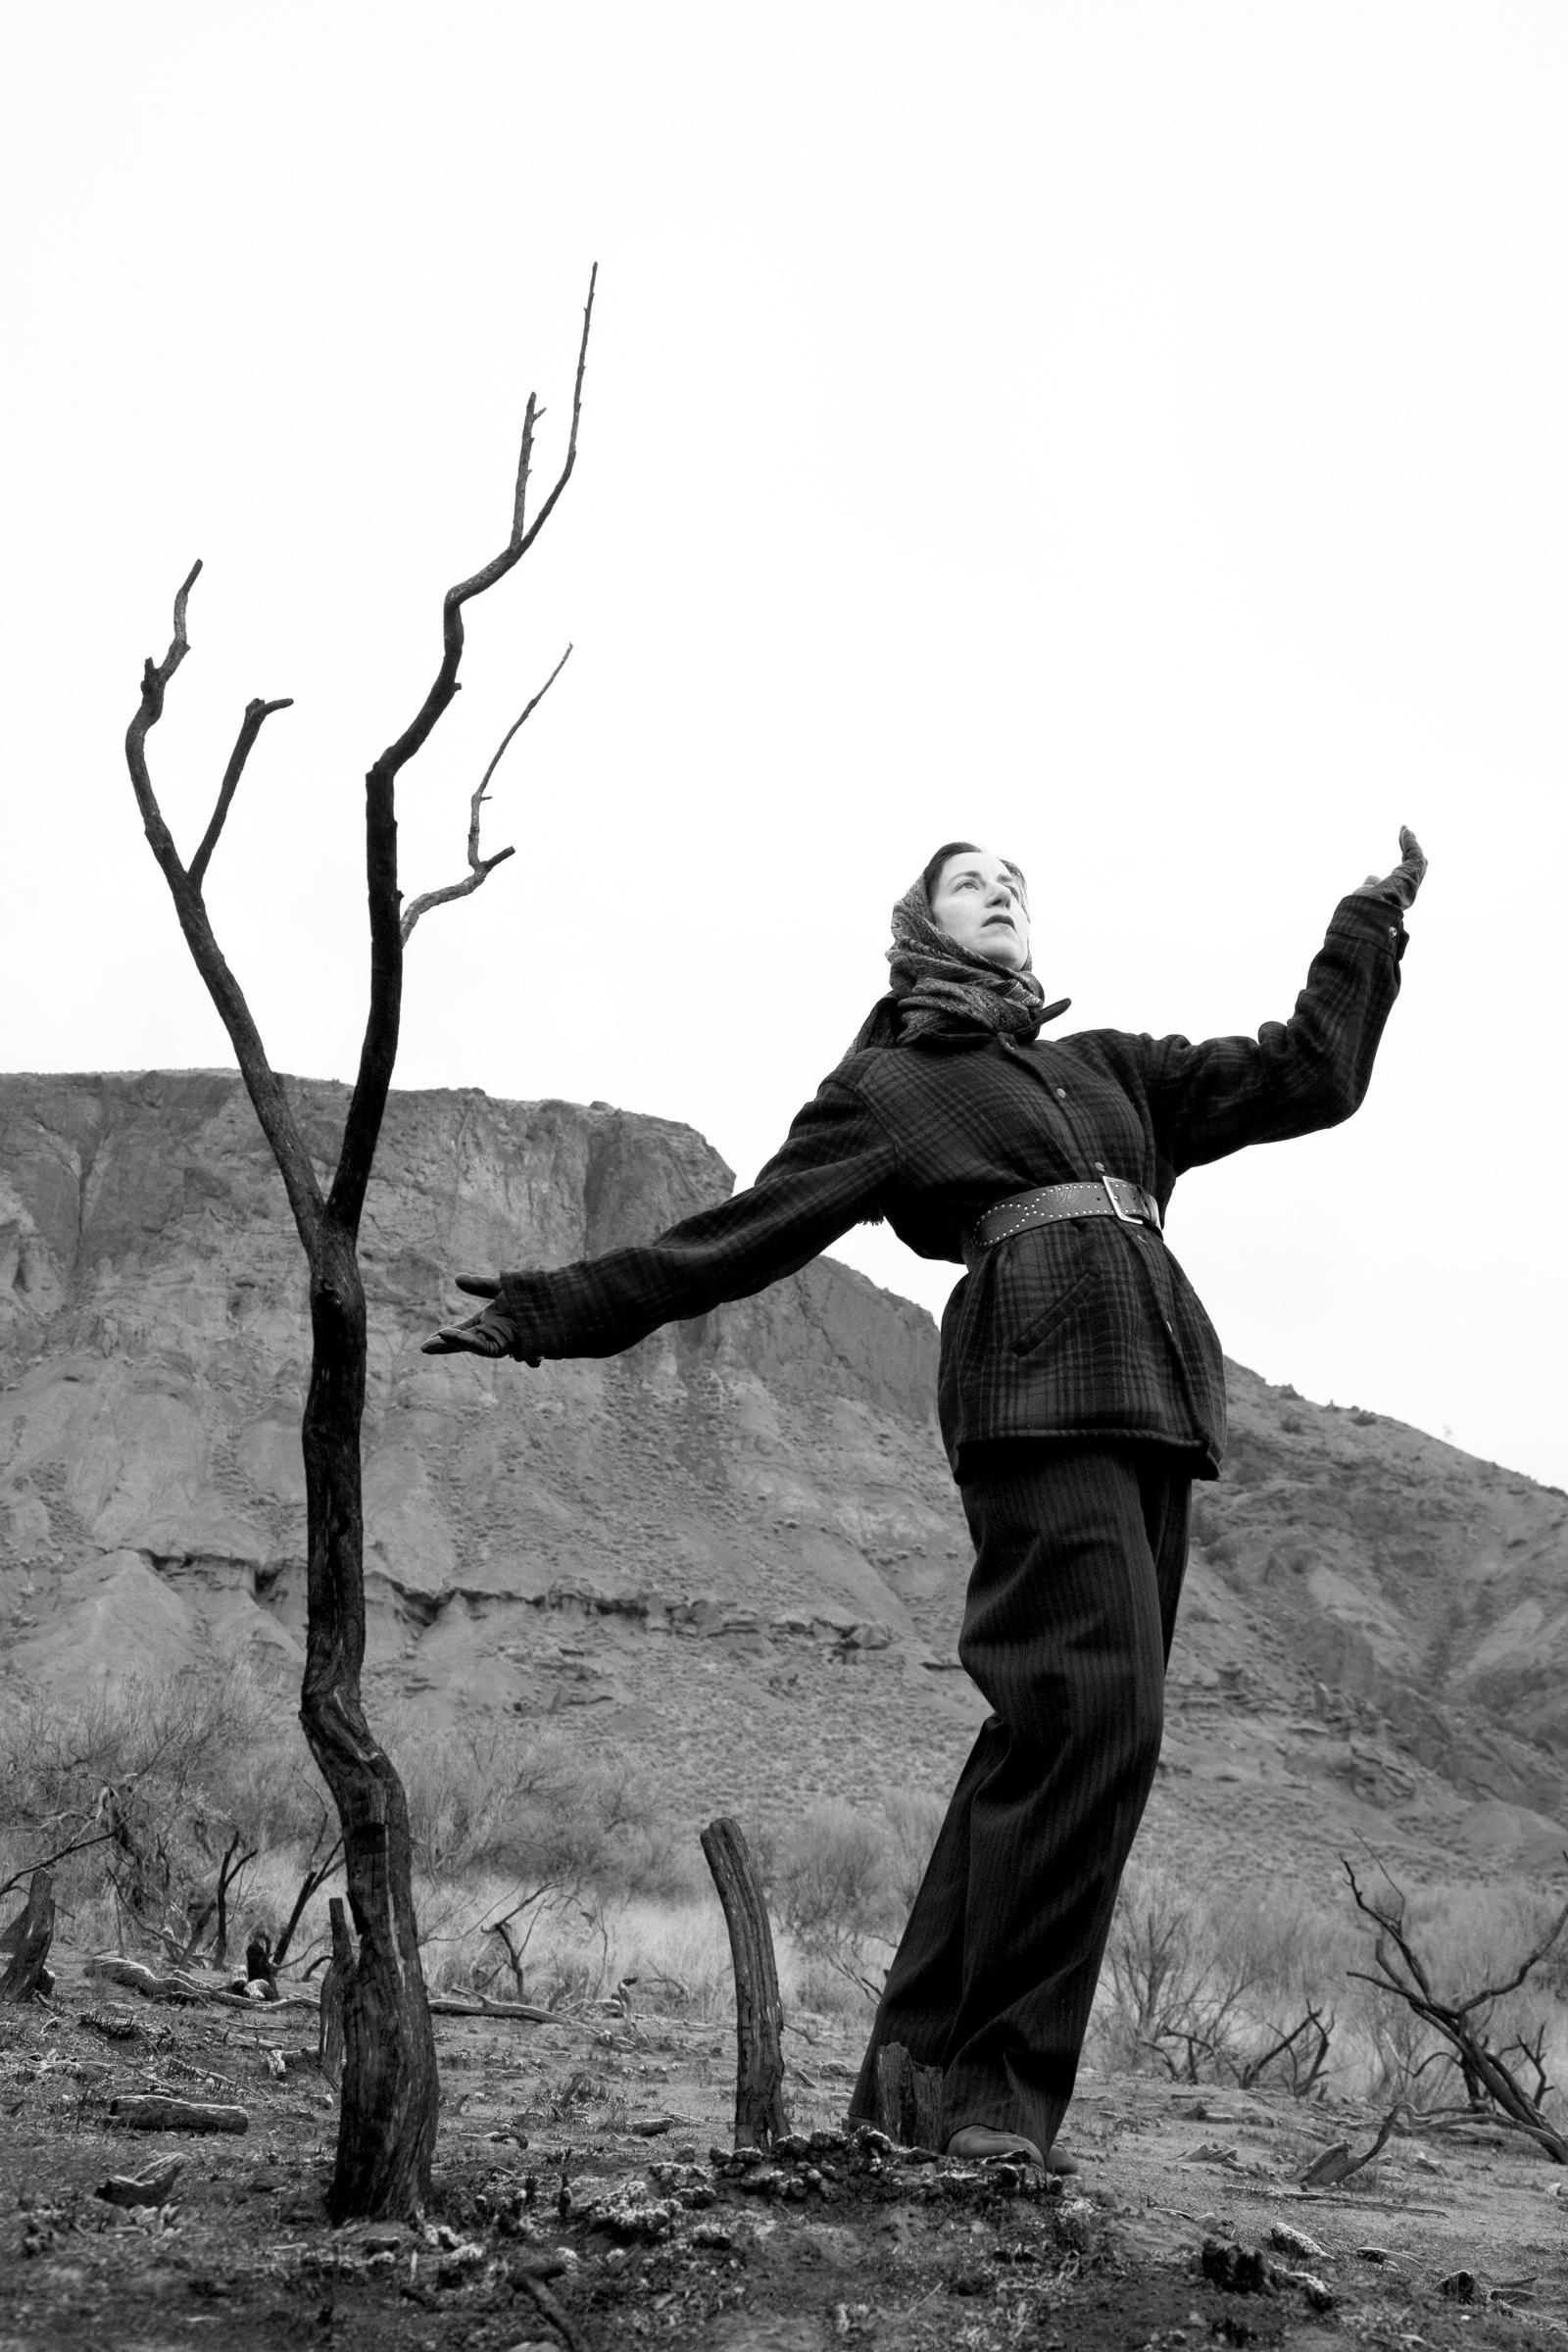 """Carol Sawyer, Natalie Brettschneider performs """"Burnt Tree,"""" Kamloops, c.1949, 2001. Courtesy of the artist and Republic Gallery, Vancouver."""